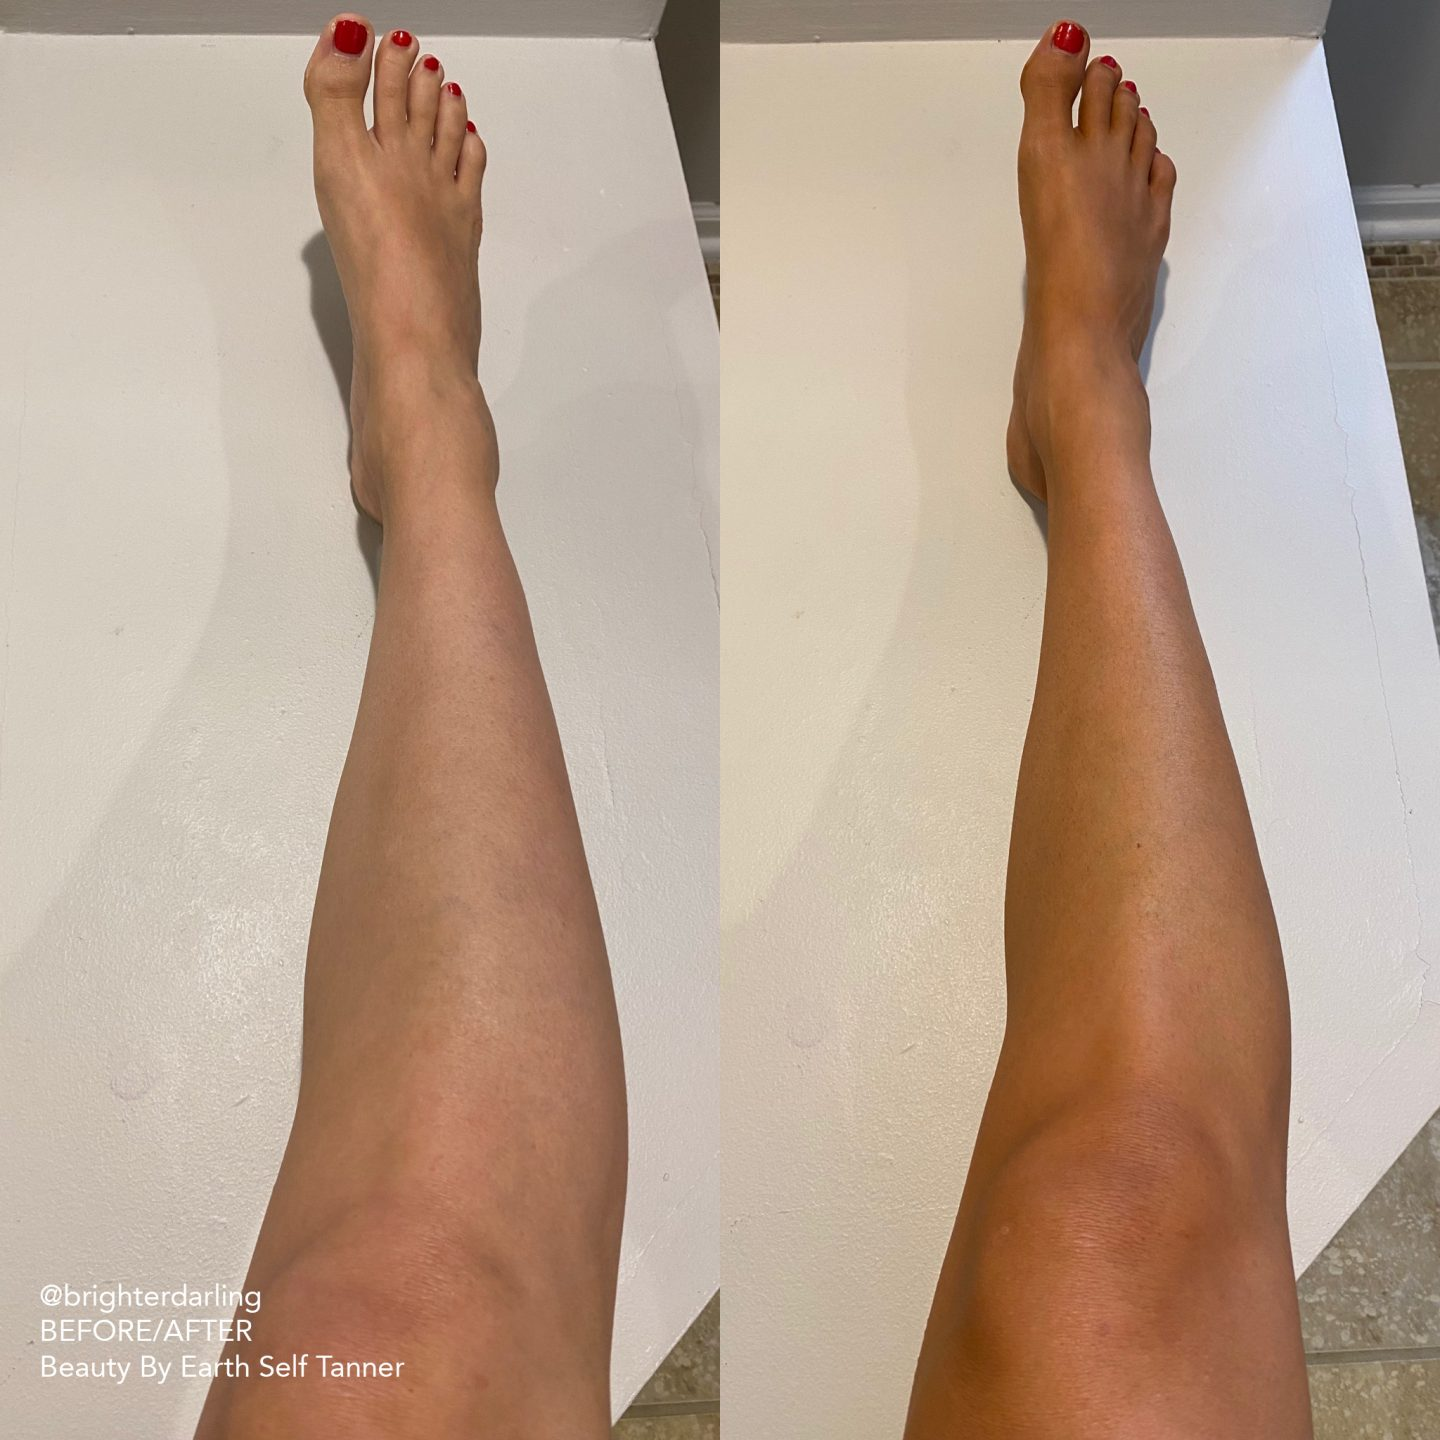 Before and After Beauty By Earth Self Tanner